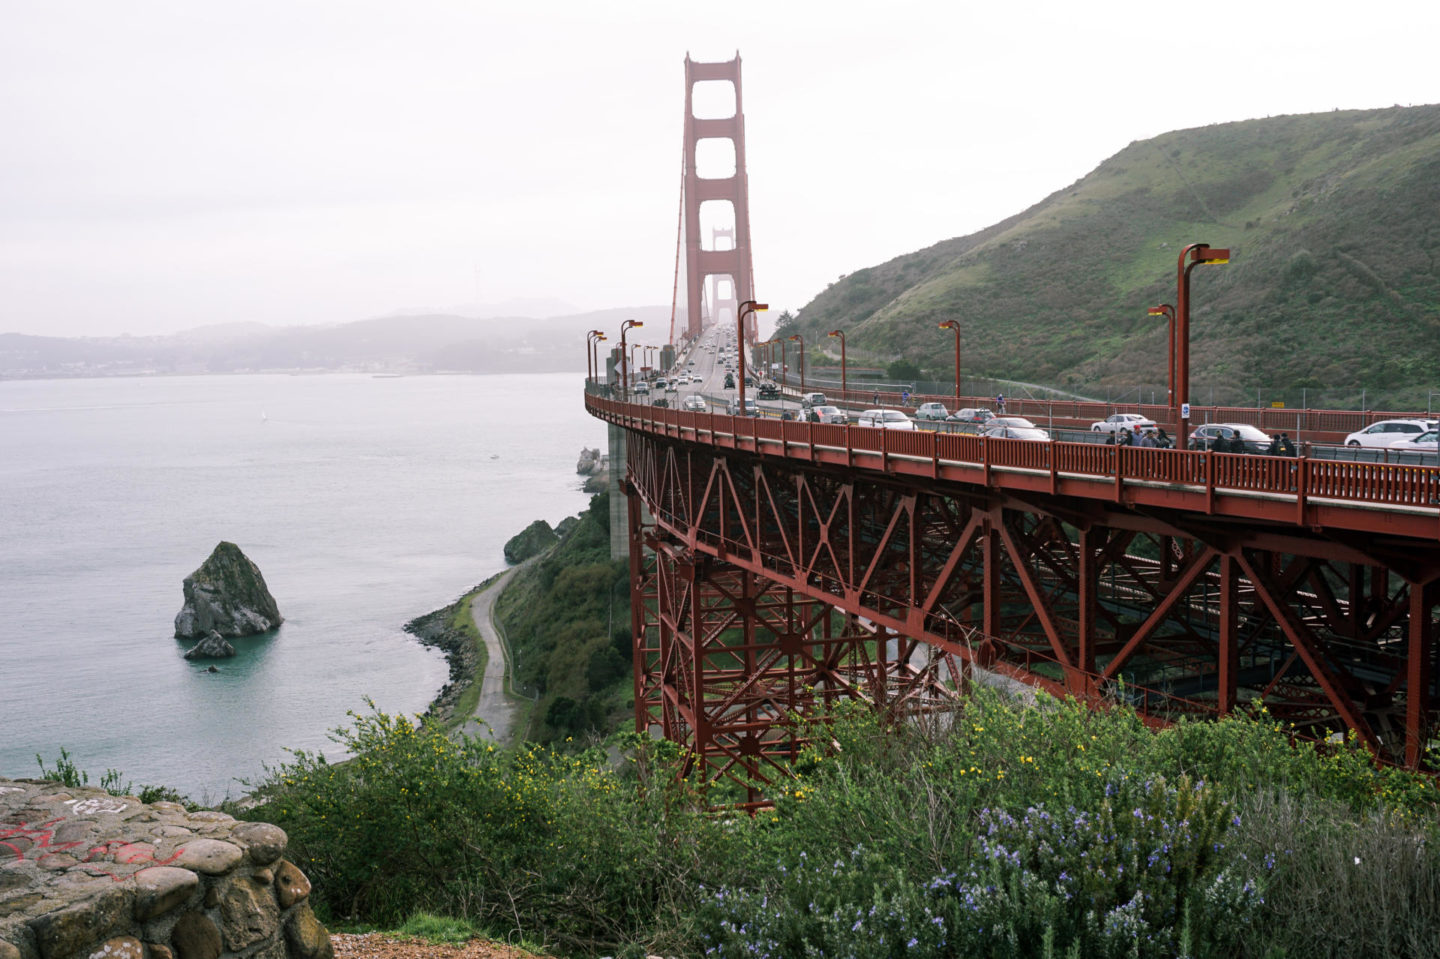 san-francisco-sf-travel-09